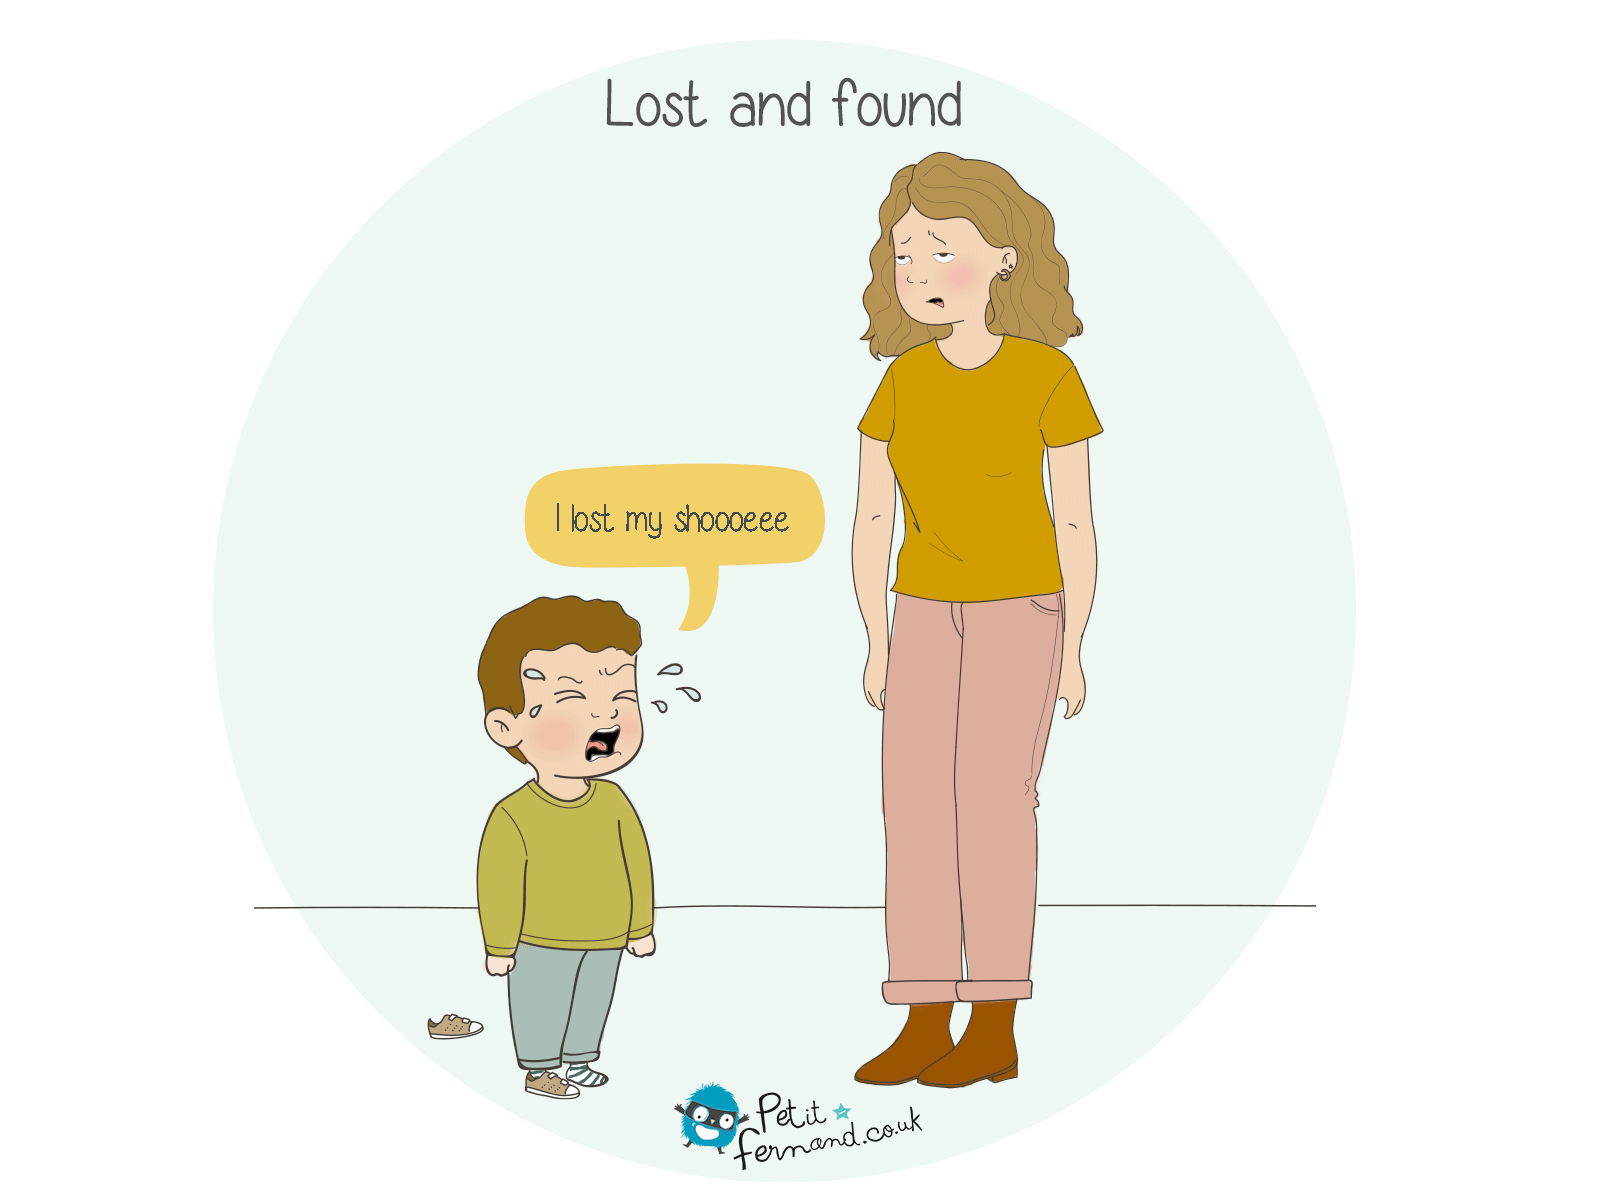 When you're a mom, you know you have the super power to find lost things!